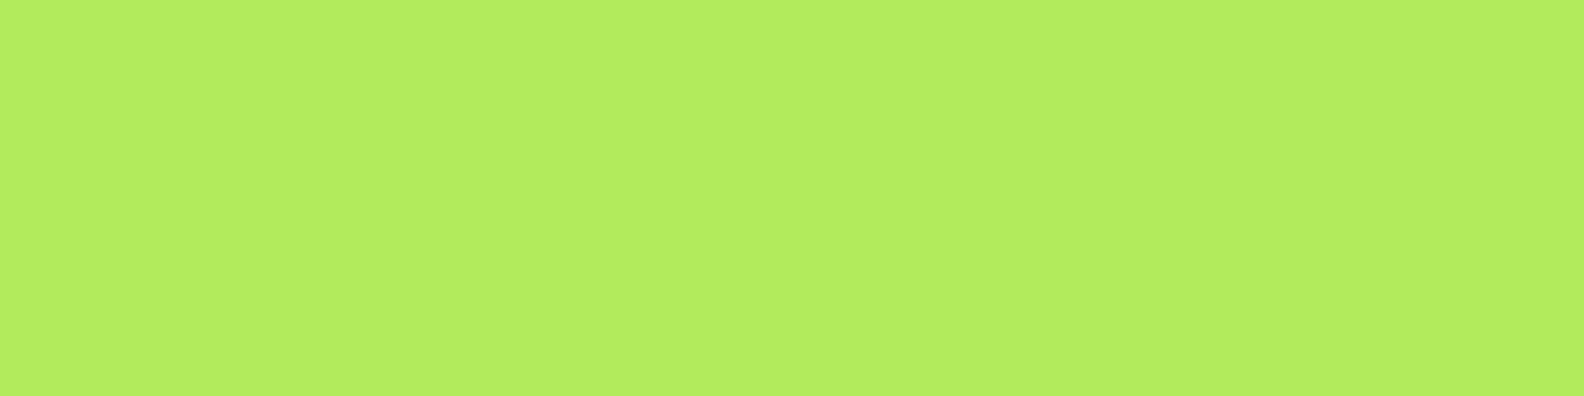 1584x396 Inchworm Solid Color Background